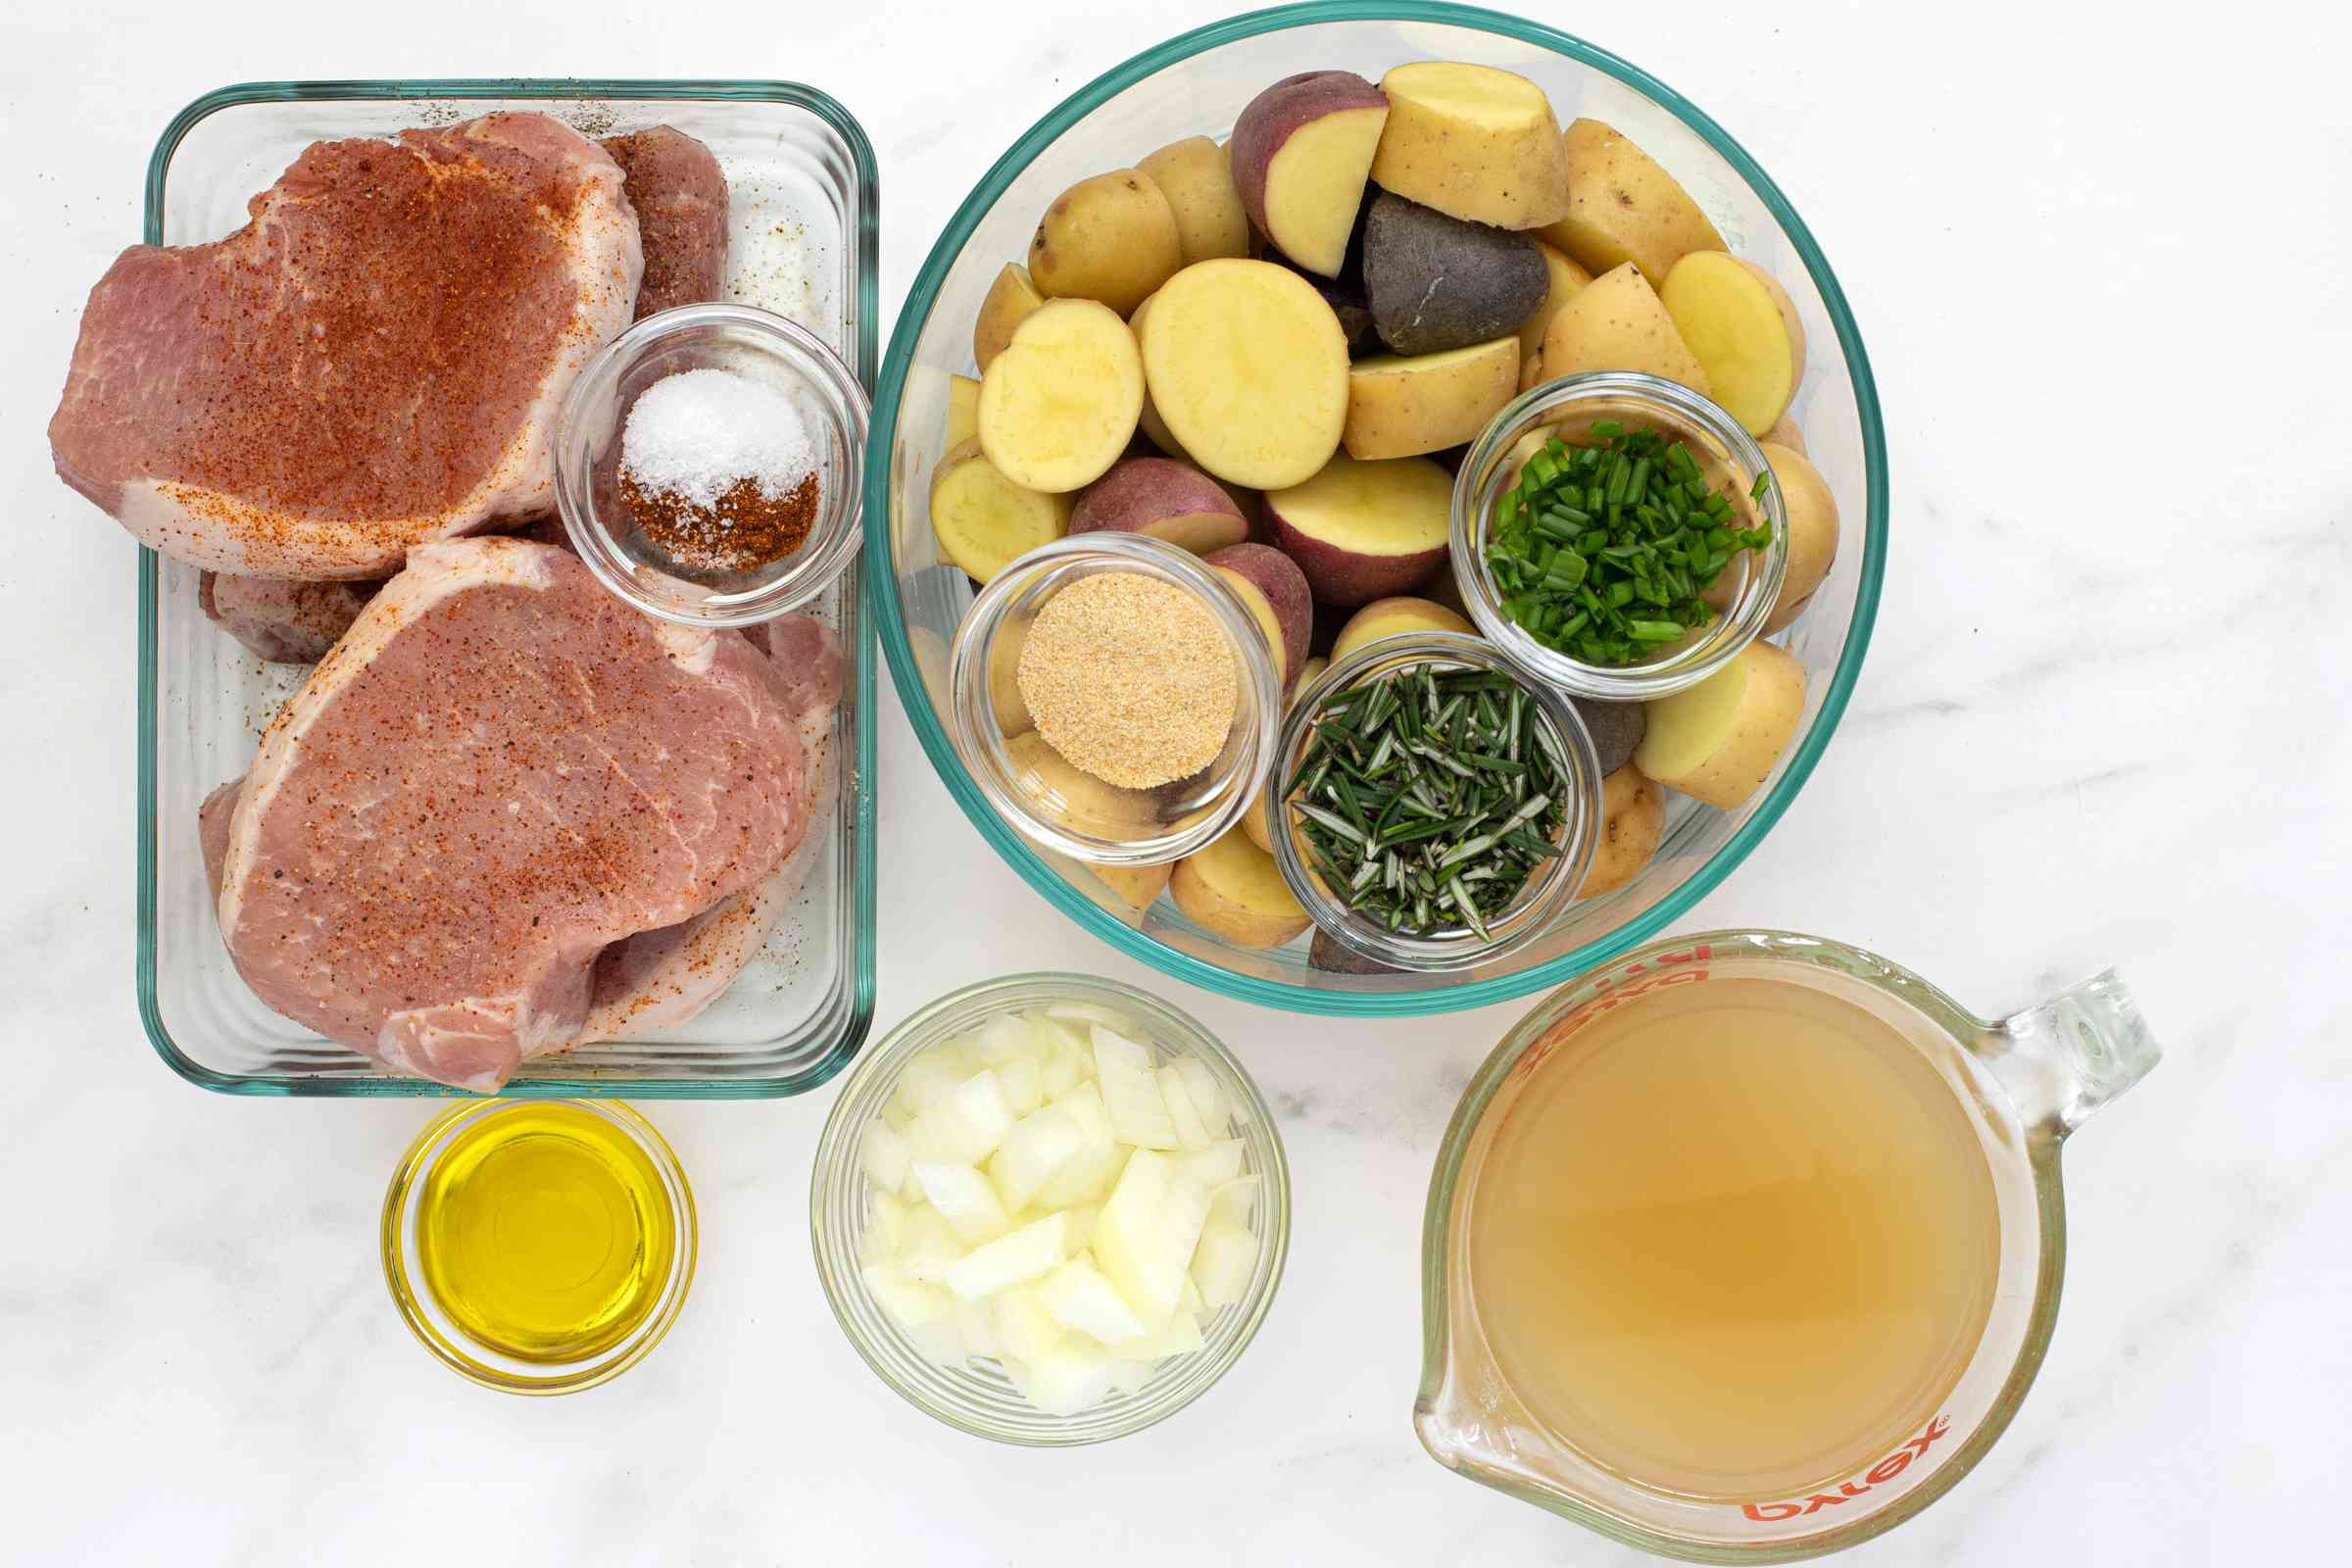 Ingredients for Instant Pot pork chops and potatoes